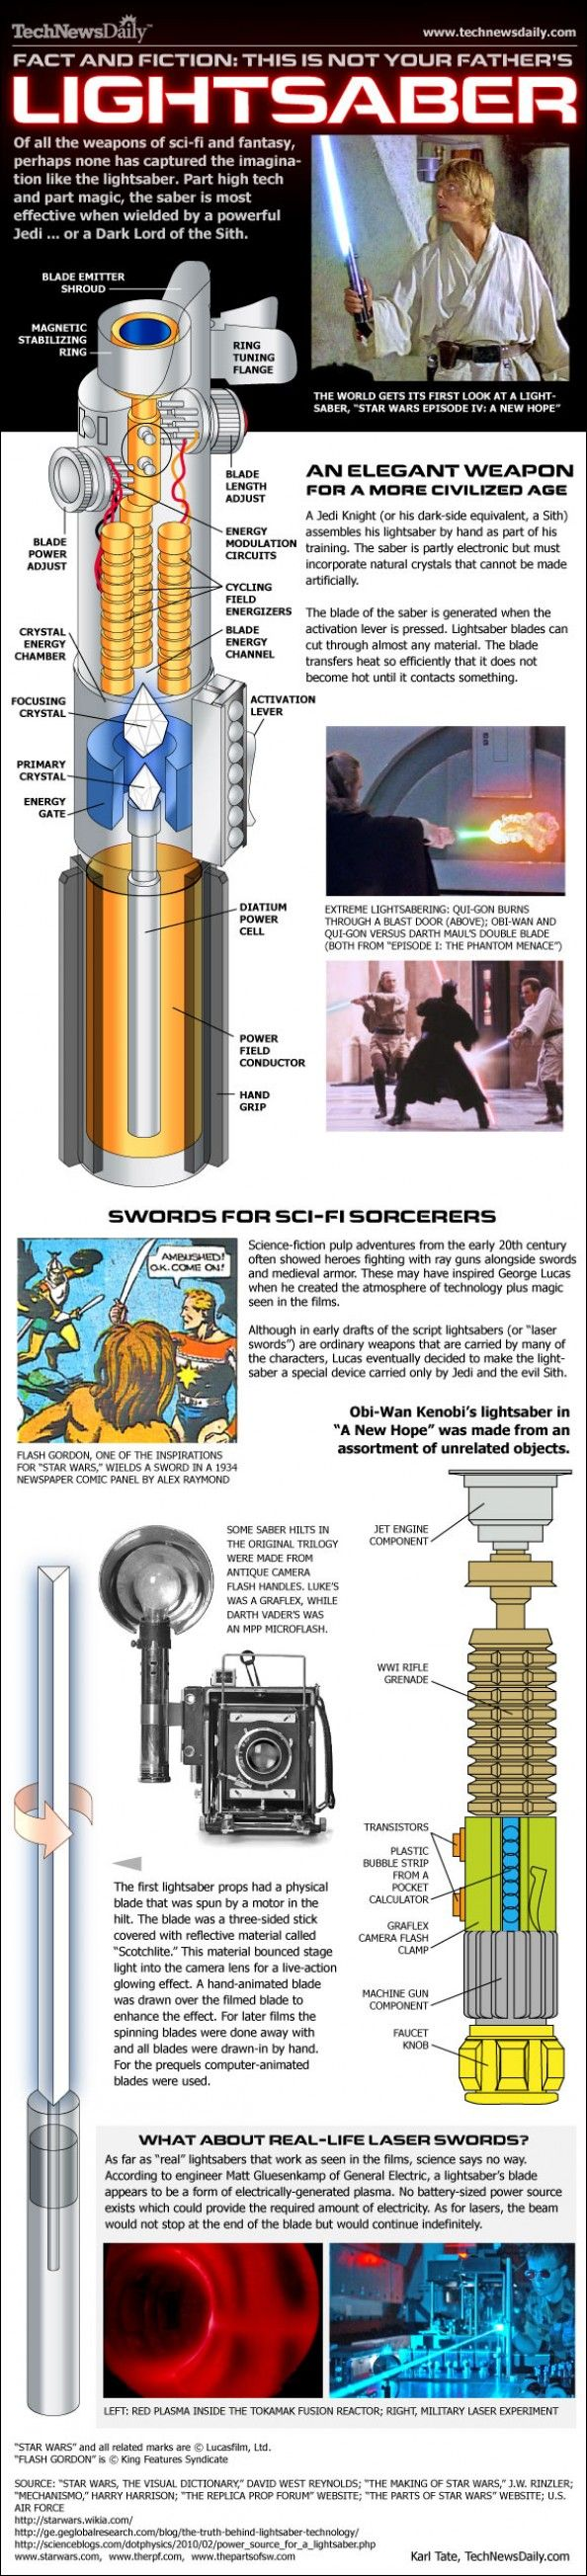 How Star Wars Lightsabers Work. One of the coolest weapons in sci-fi and movie history is the lightsaber. First introduced in Star Wars, it is one awesome piece of weaponry. This infographic shows the inner-workings of the lightsaber and how its powers can be used for good or evil depending on whose hands it is in. Read on for more fun lightsaber facts and how it has evolved over the years.